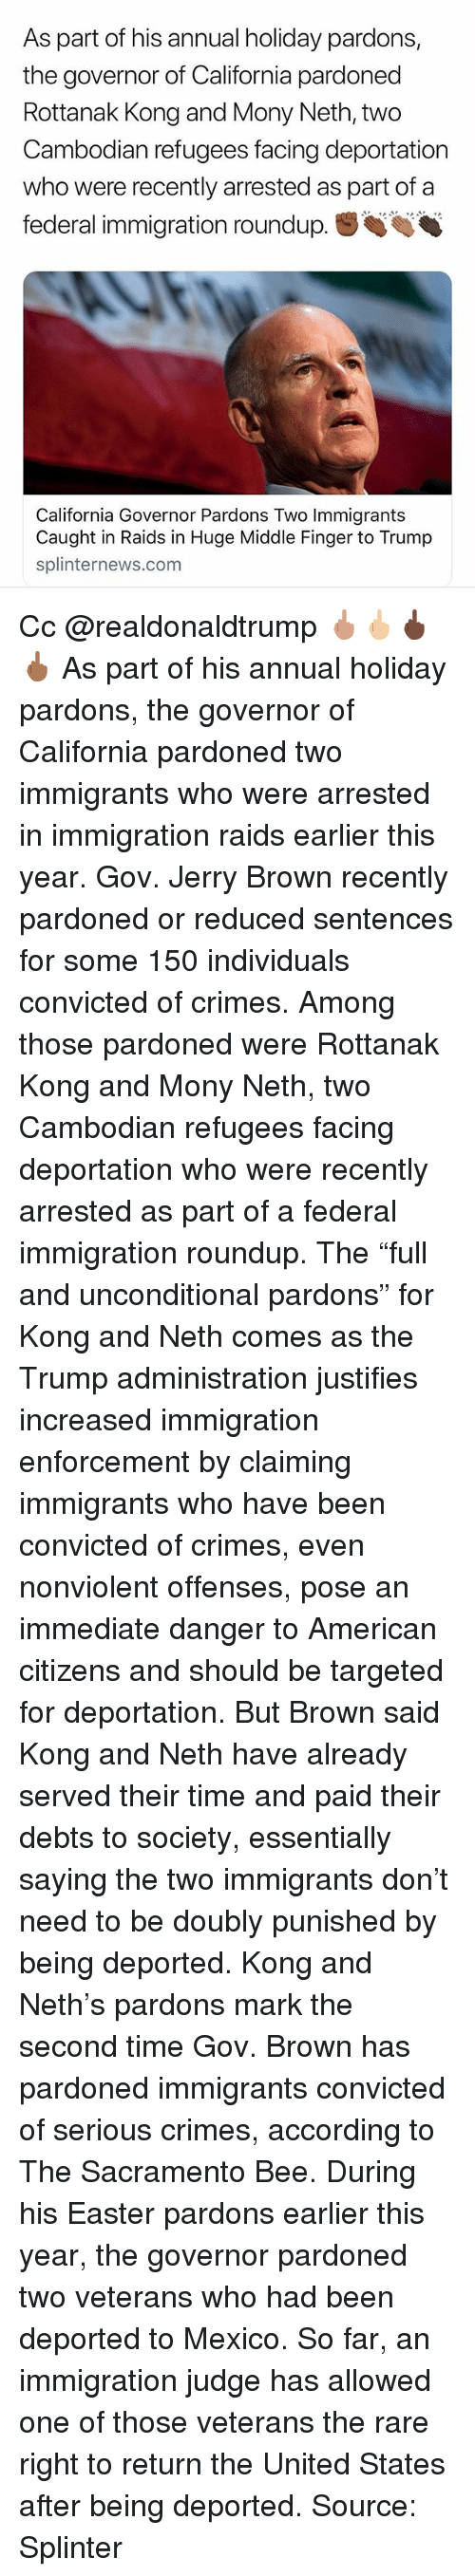 """Easter, Memes, and American: As part of his annual holiday pardons,  the governor of California pardoned  Rottanak Kong and Mony Neth, two  Cambodian refugees facing deportation  who were recently arrested as part of a  federal immigration roundup.  California Governor Pardons Two Immigrants  Caught in Raids in Huge Middle Finger to Trump  splinternews.com Cc @realdonaldtrump 🖕🏽🖕🏼🖕🏿🖕🏾 As part of his annual holiday pardons, the governor of California pardoned two immigrants who were arrested in immigration raids earlier this year. Gov. Jerry Brown recently pardoned or reduced sentences for some 150 individuals convicted of crimes. Among those pardoned were Rottanak Kong and Mony Neth, two Cambodian refugees facing deportation who were recently arrested as part of a federal immigration roundup. The """"full and unconditional pardons"""" for Kong and Neth comes as the Trump administration justifies increased immigration enforcement by claiming immigrants who have been convicted of crimes, even nonviolent offenses, pose an immediate danger to American citizens and should be targeted for deportation. But Brown said Kong and Neth have already served their time and paid their debts to society, essentially saying the two immigrants don't need to be doubly punished by being deported. Kong and Neth's pardons mark the second time Gov. Brown has pardoned immigrants convicted of serious crimes, according to The Sacramento Bee. During his Easter pardons earlier this year, the governor pardoned two veterans who had been deported to Mexico. So far, an immigration judge has allowed one of those veterans the rare right to return the United States after being deported. Source: Splinter"""